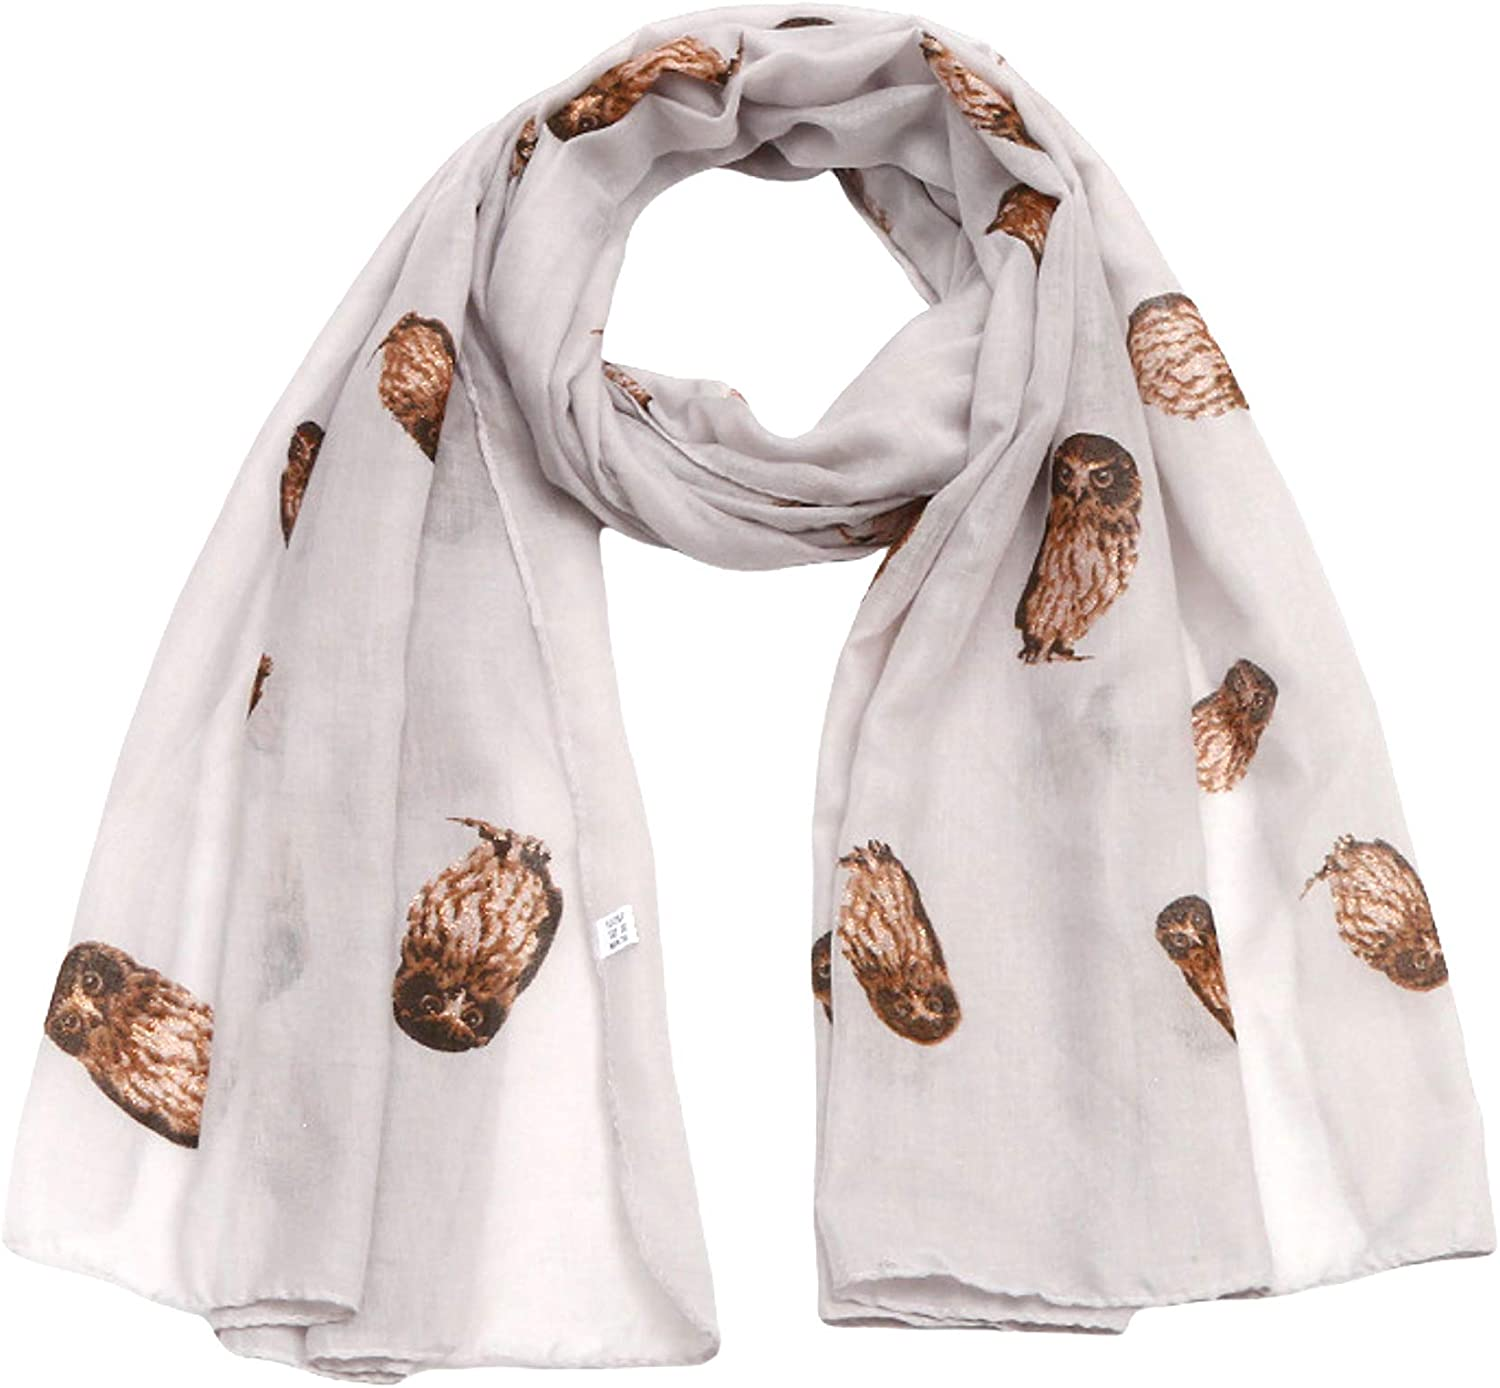 LaVieLente Fashion Scarf for Women Lightweight Floral, Animal Print Graphic Spring Fall Shawl Wraps